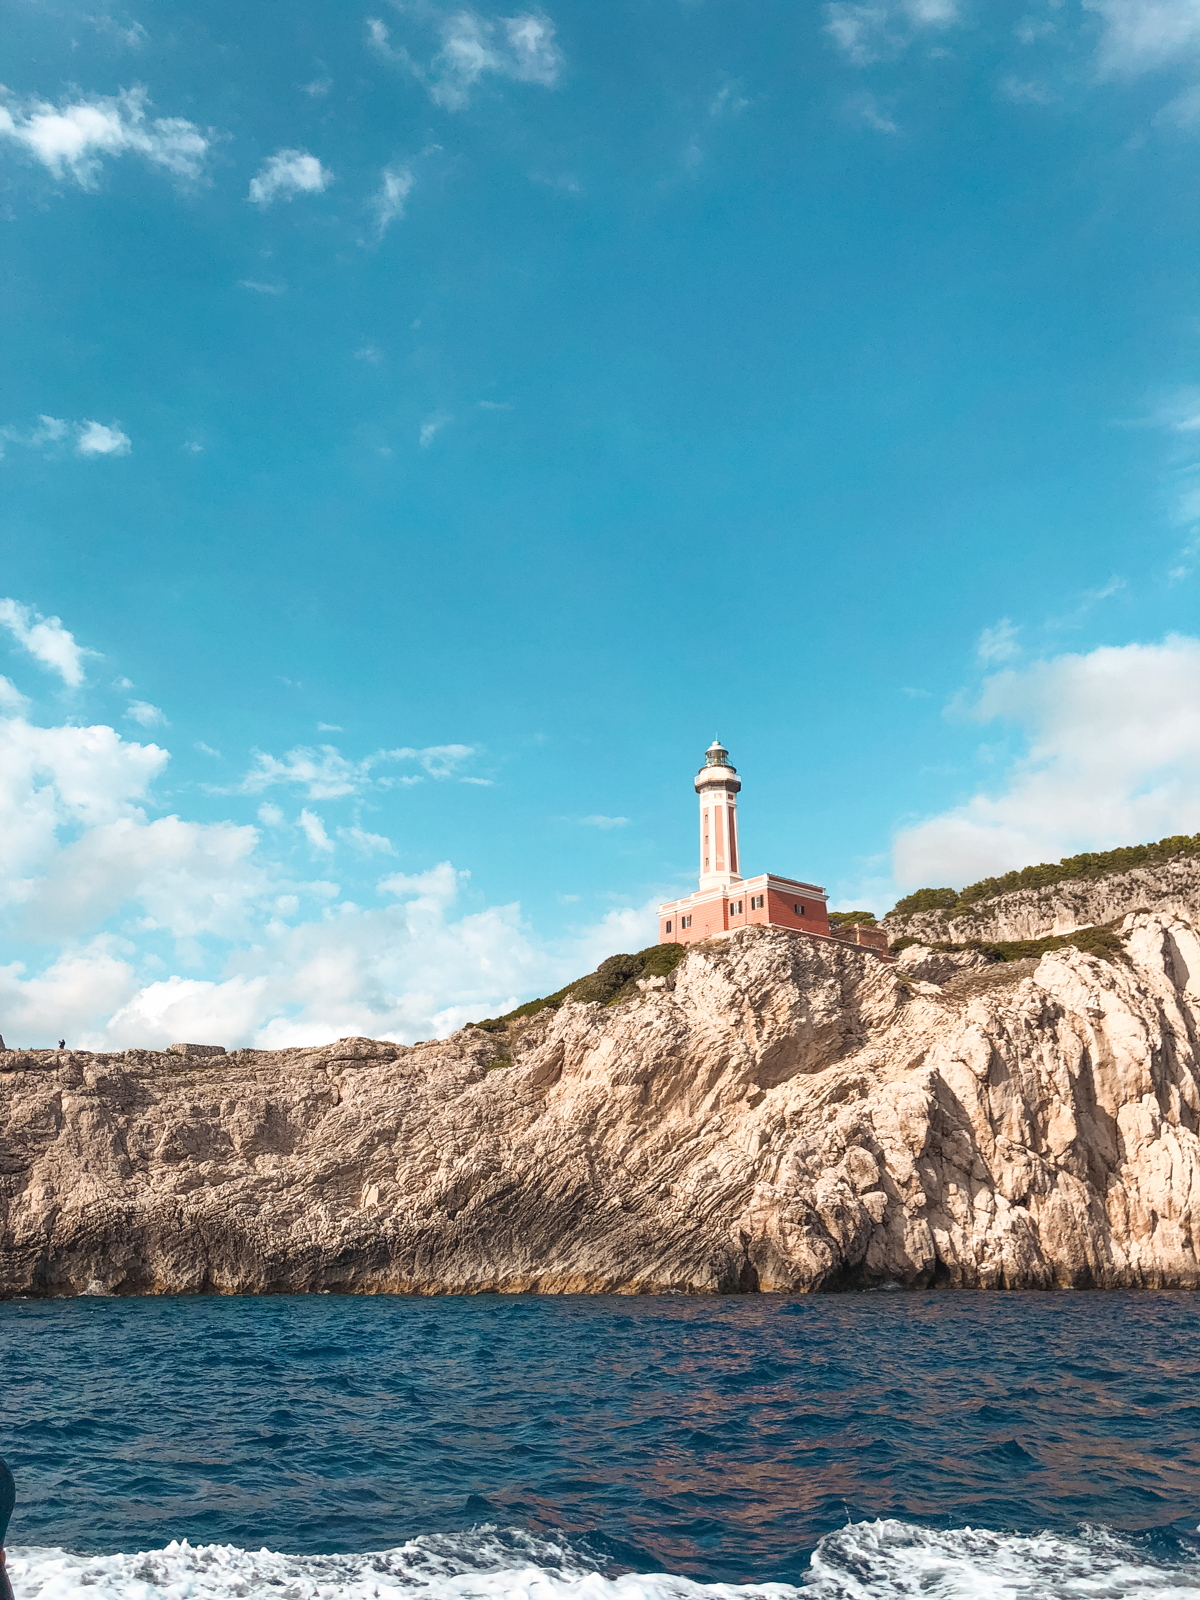 out on the water near capri with a lighthouse in the distance